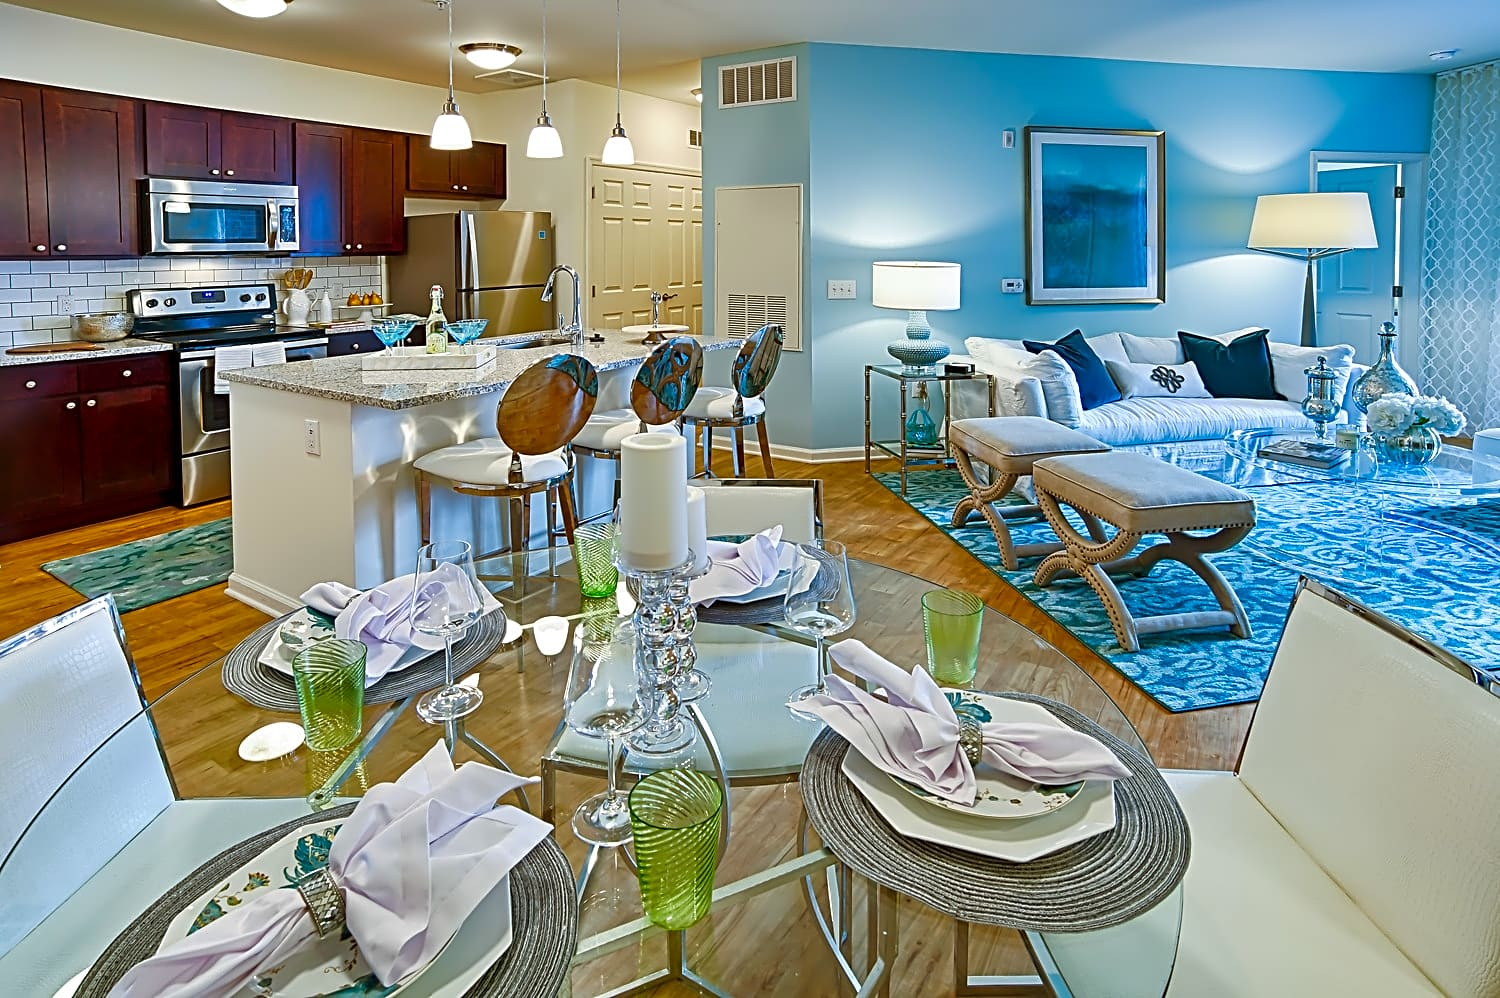 Apartments Near PCOM The Royal Athena for Philadelphia College of Osteopathic Medicine Students in Philadelphia, PA